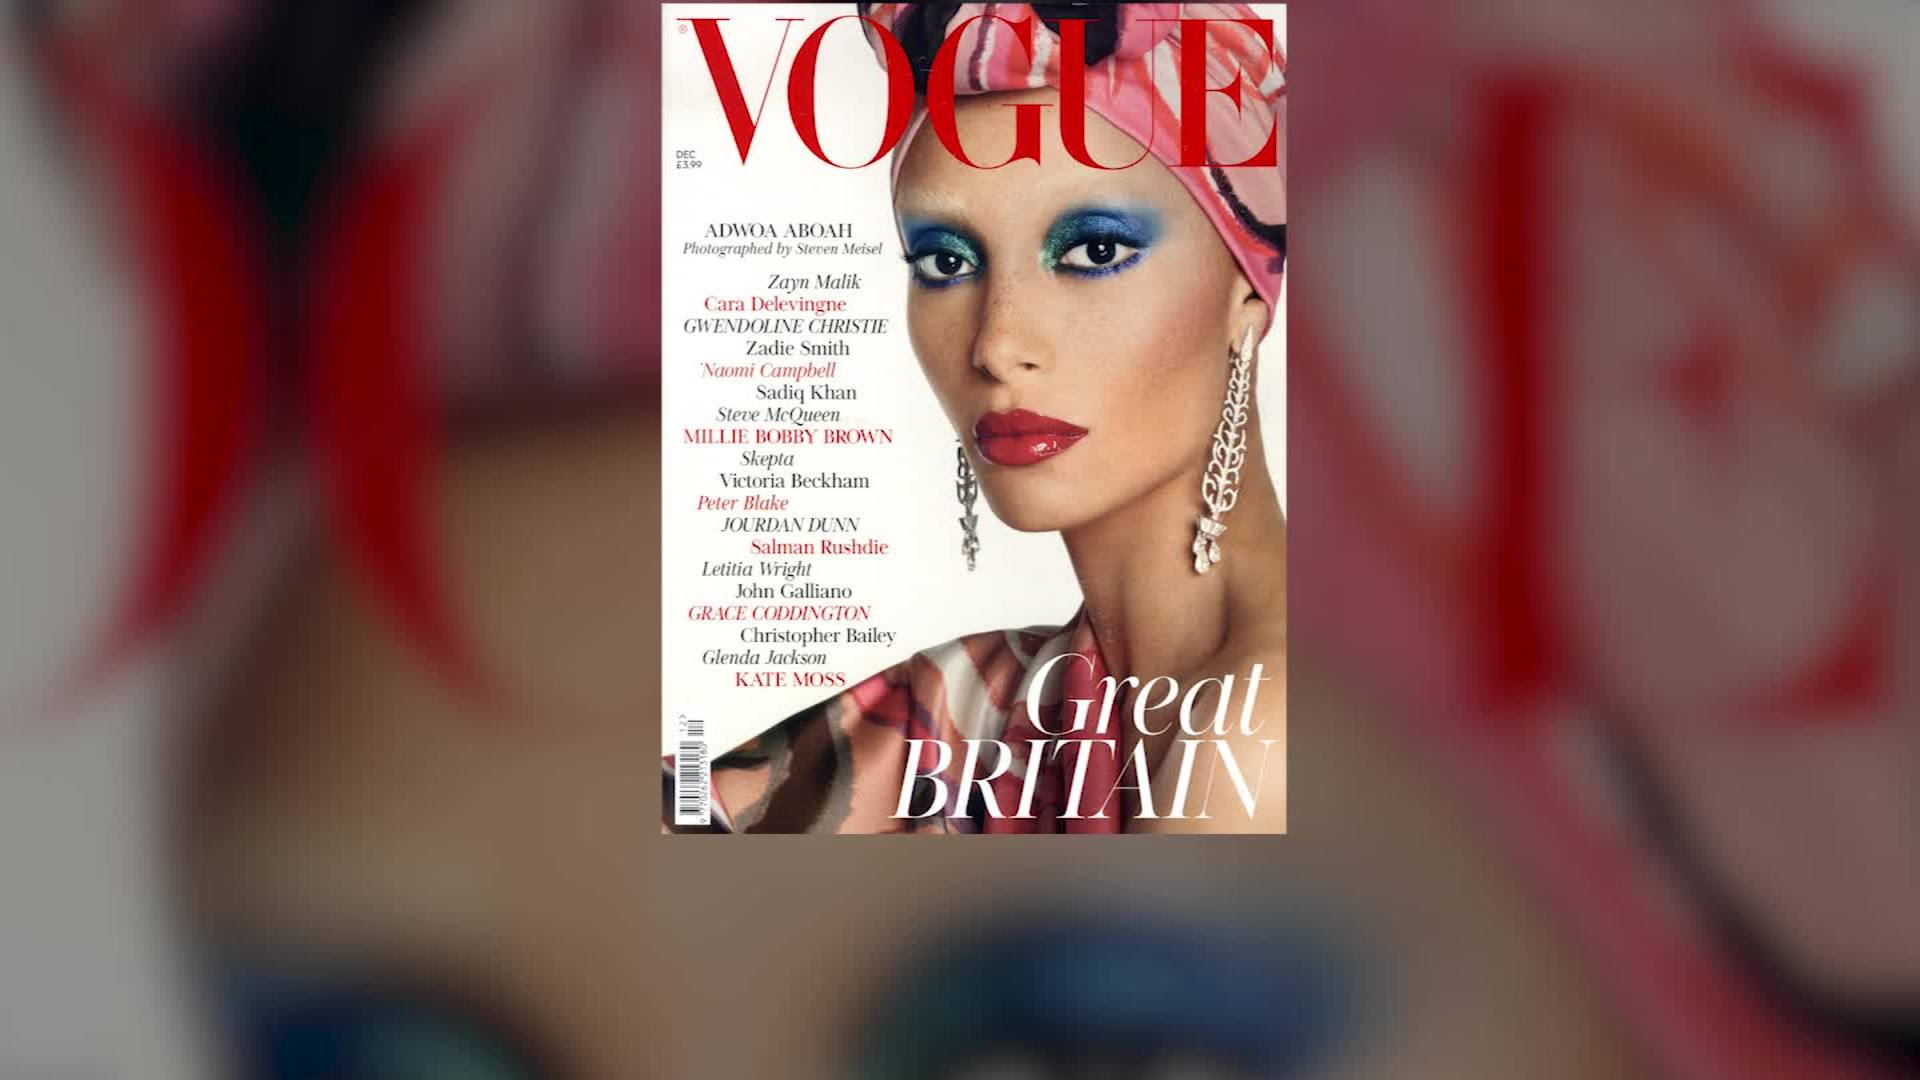 Vogue's new cover star signals new era for diveristy